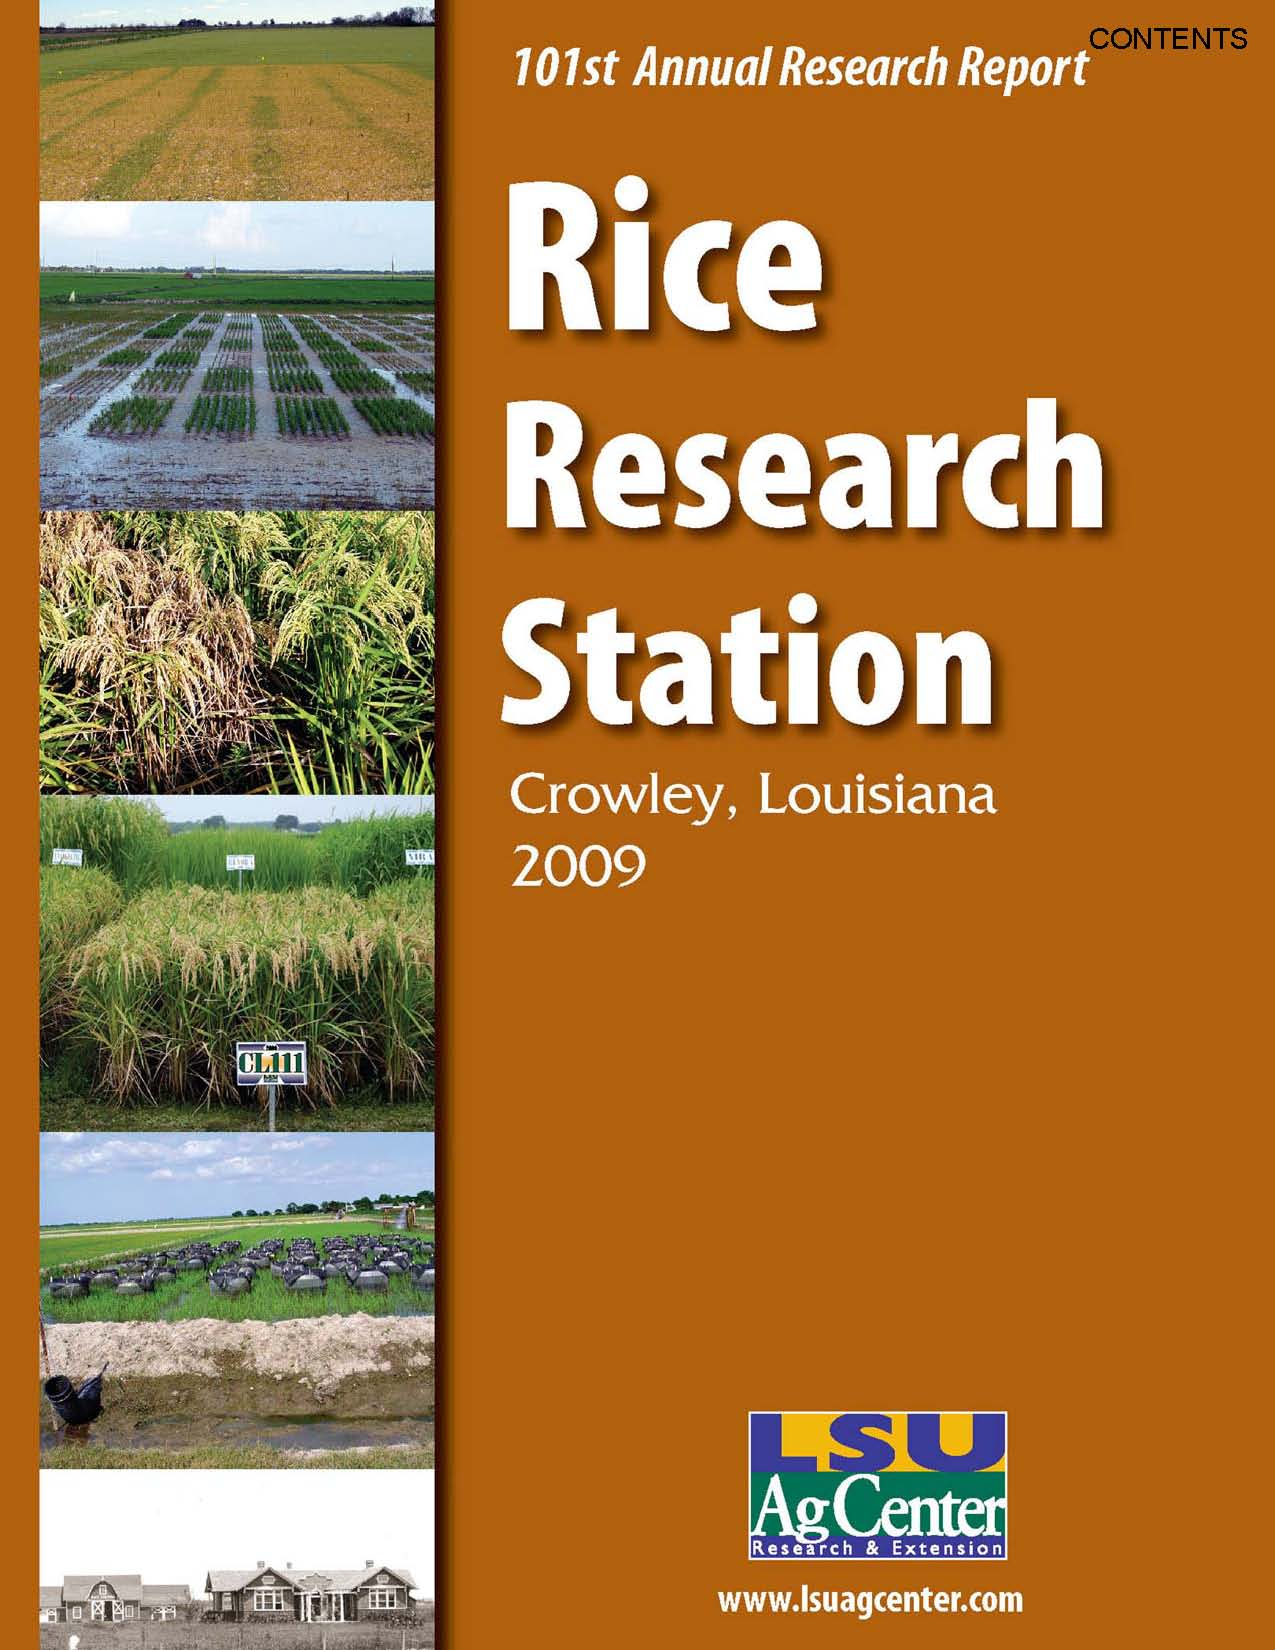 2009 Rice Research Station Annual Report